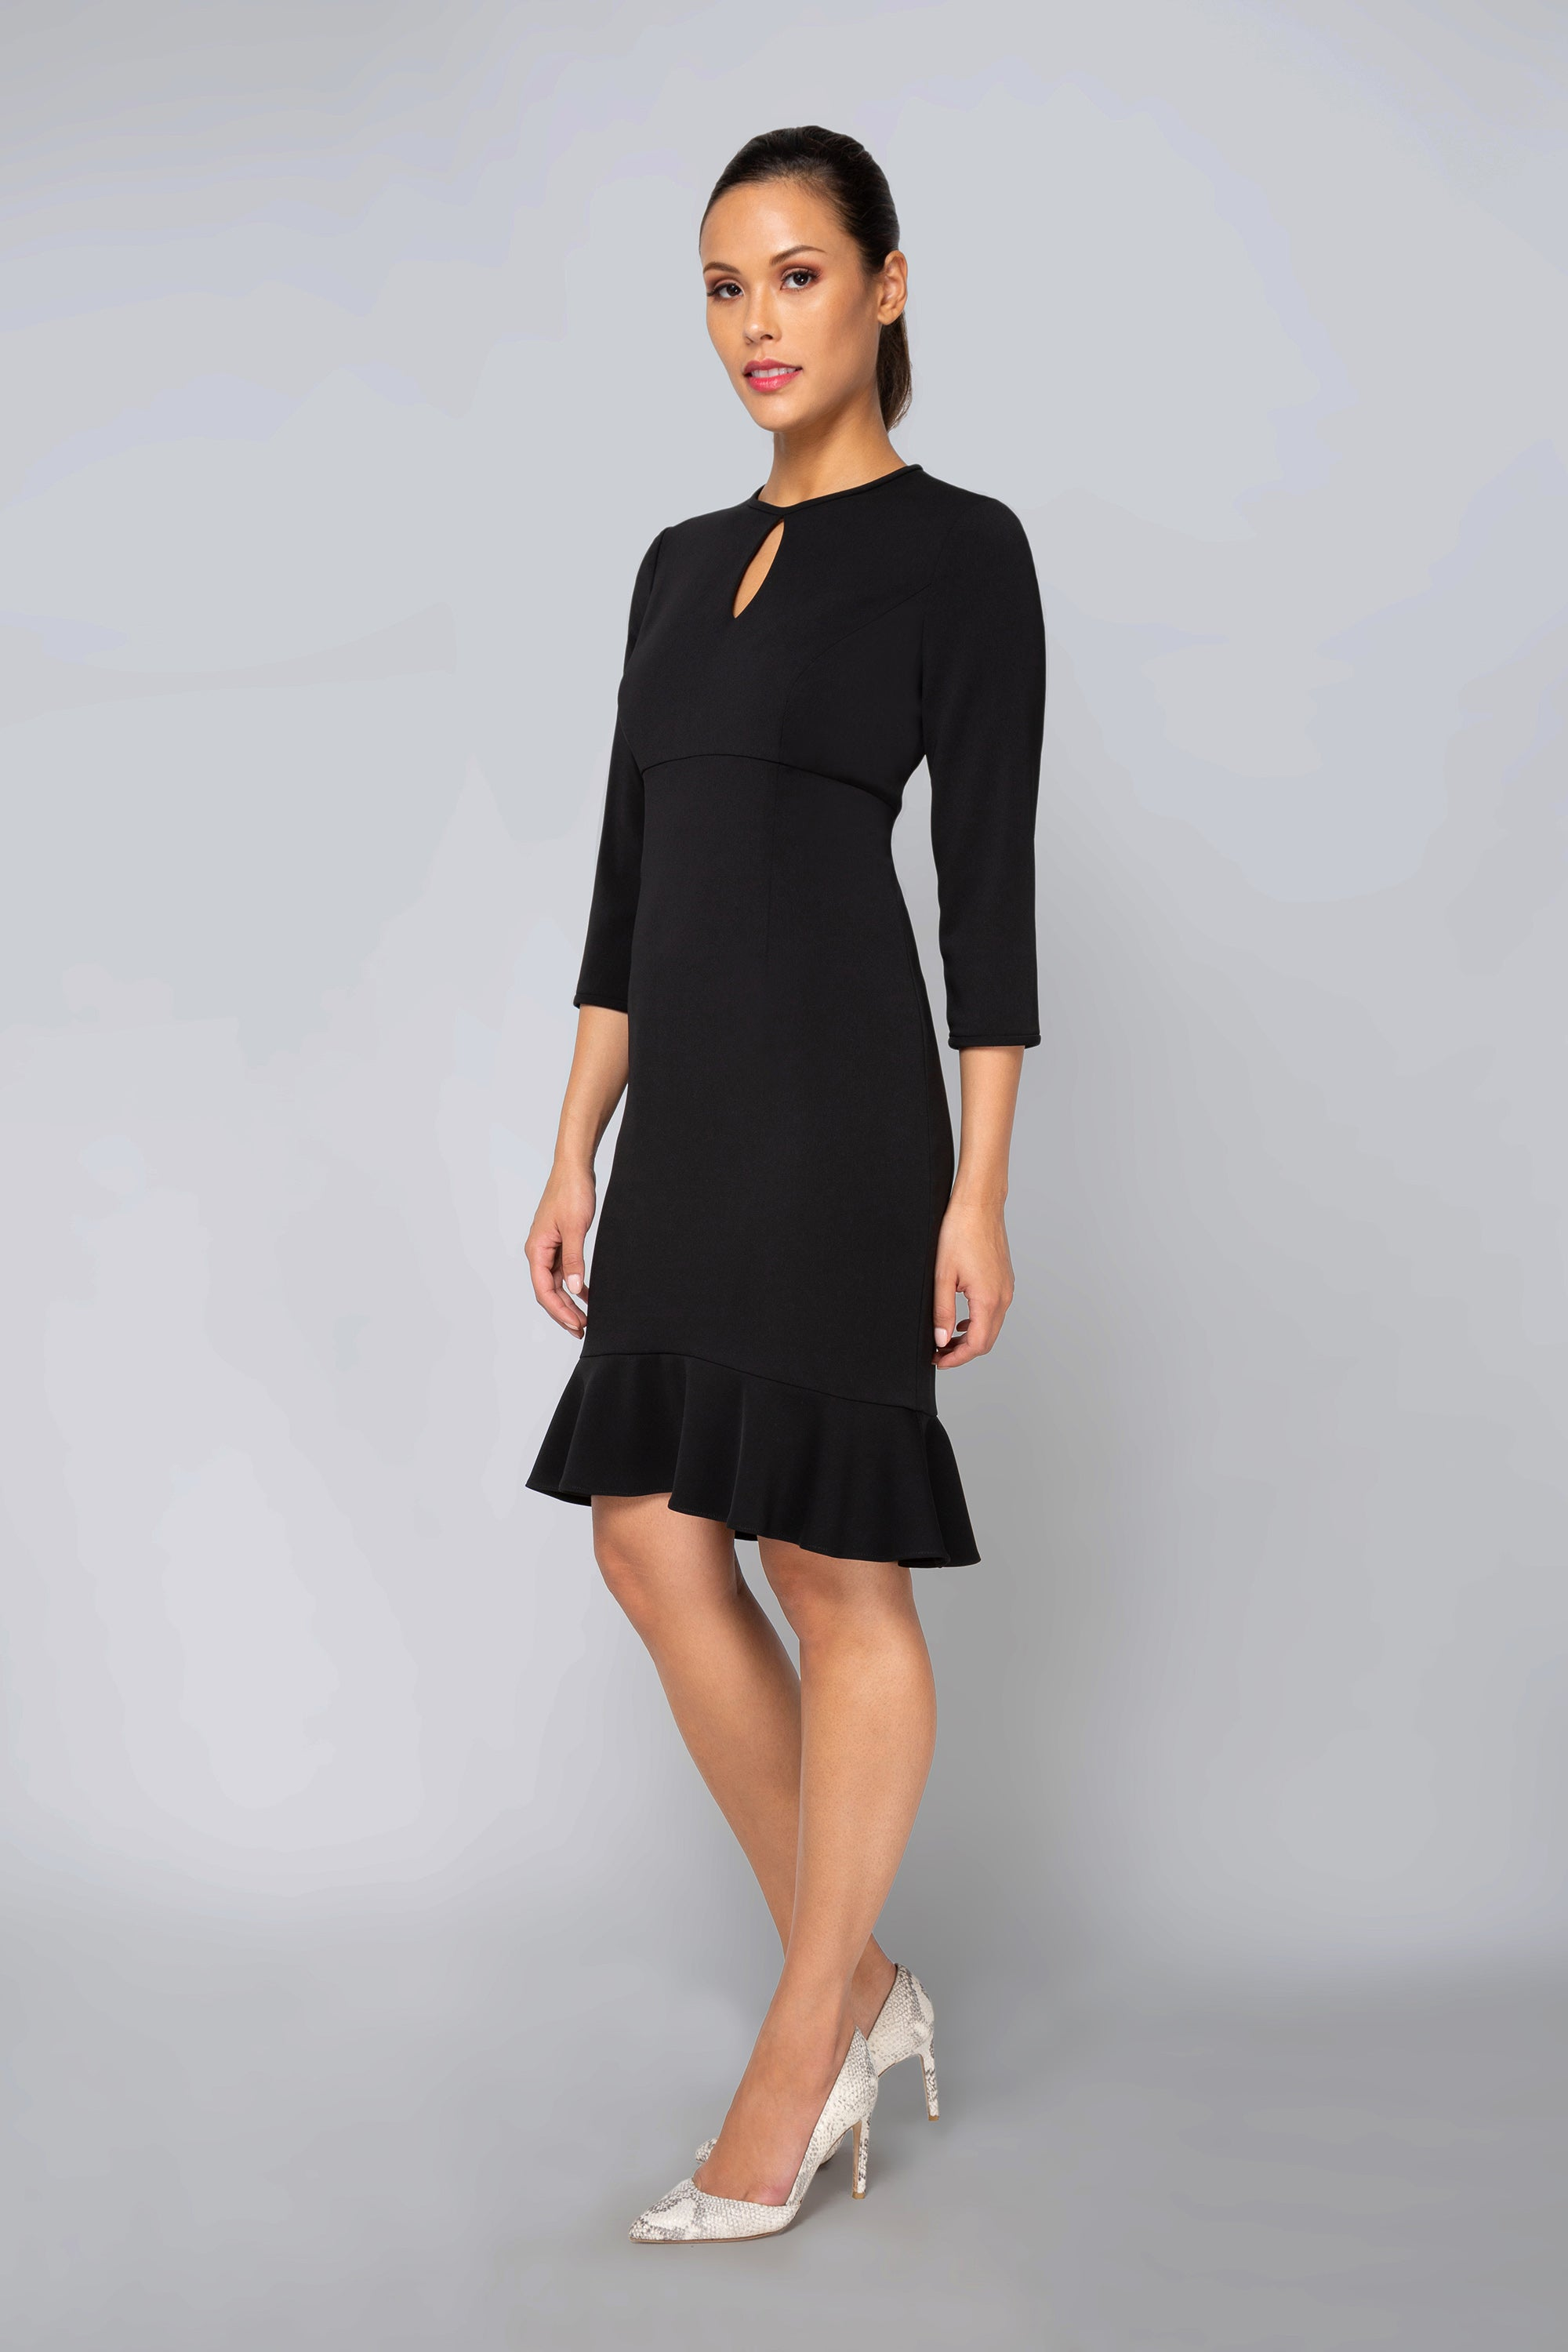 Giselle Dress - Black